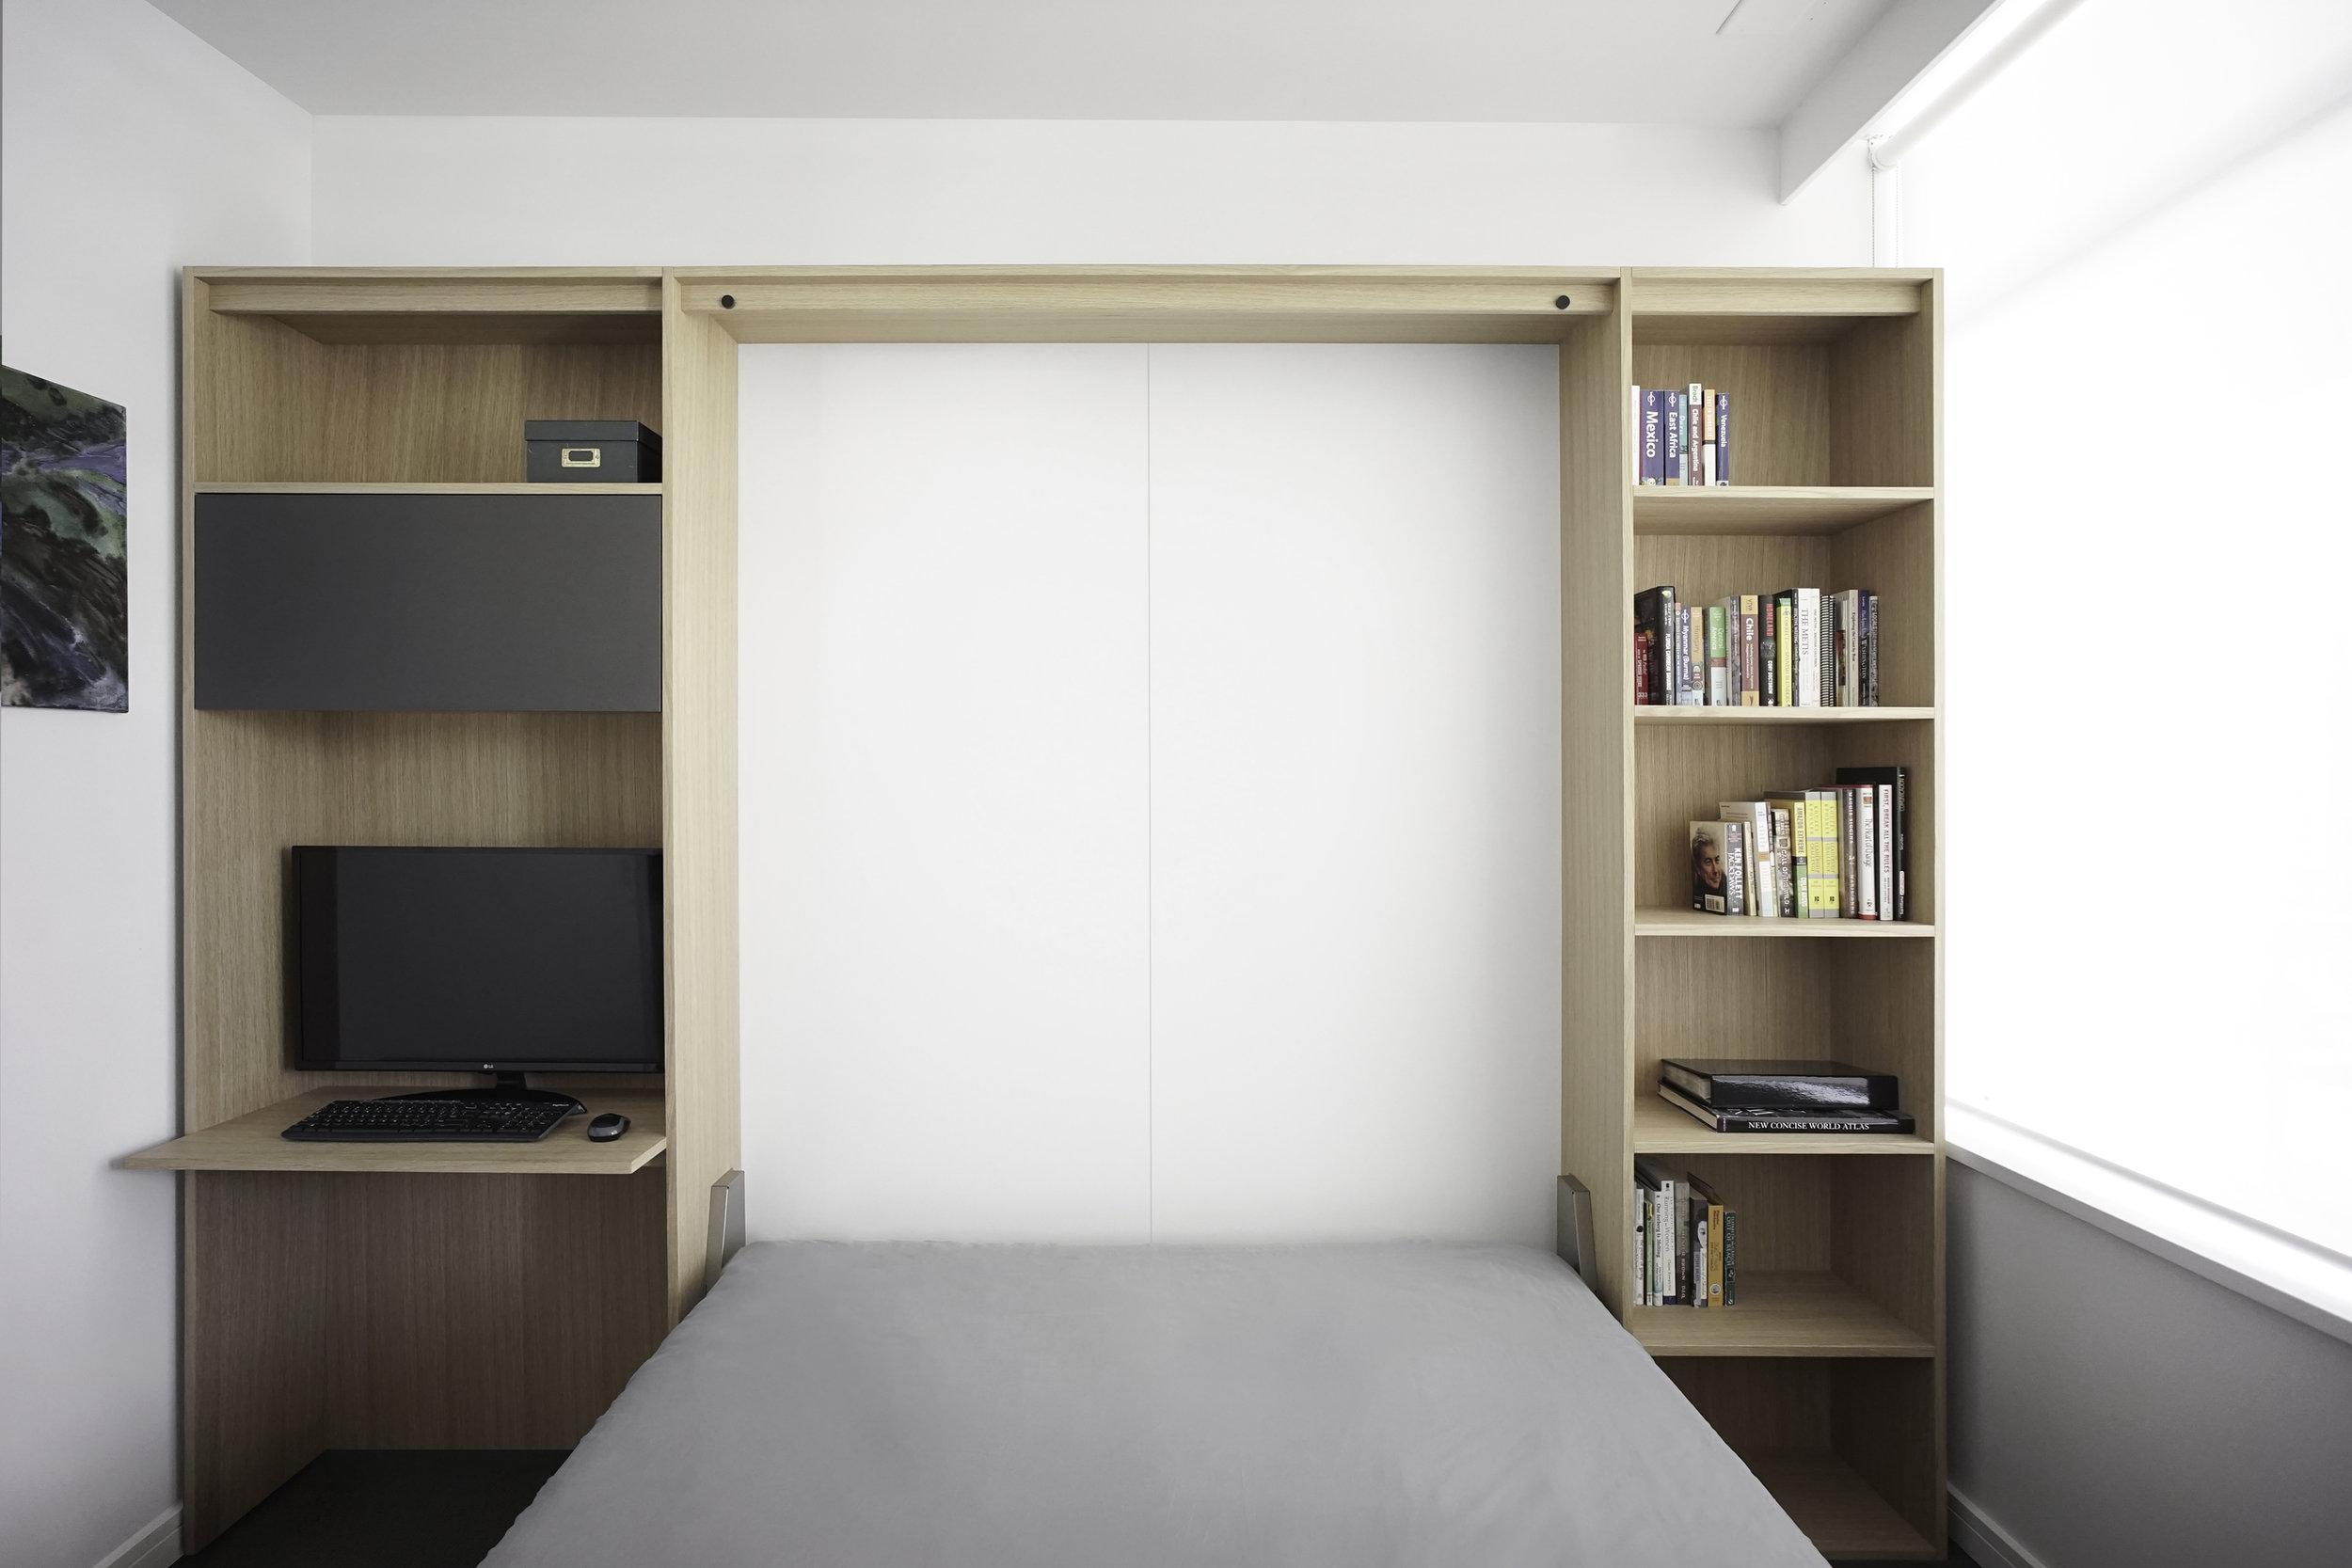 Murphy bed WALLBED CUSTOM FURNITURE BUILT-IN CABINETRY VANCOUVER ANTHILL STUDIO NEXUS